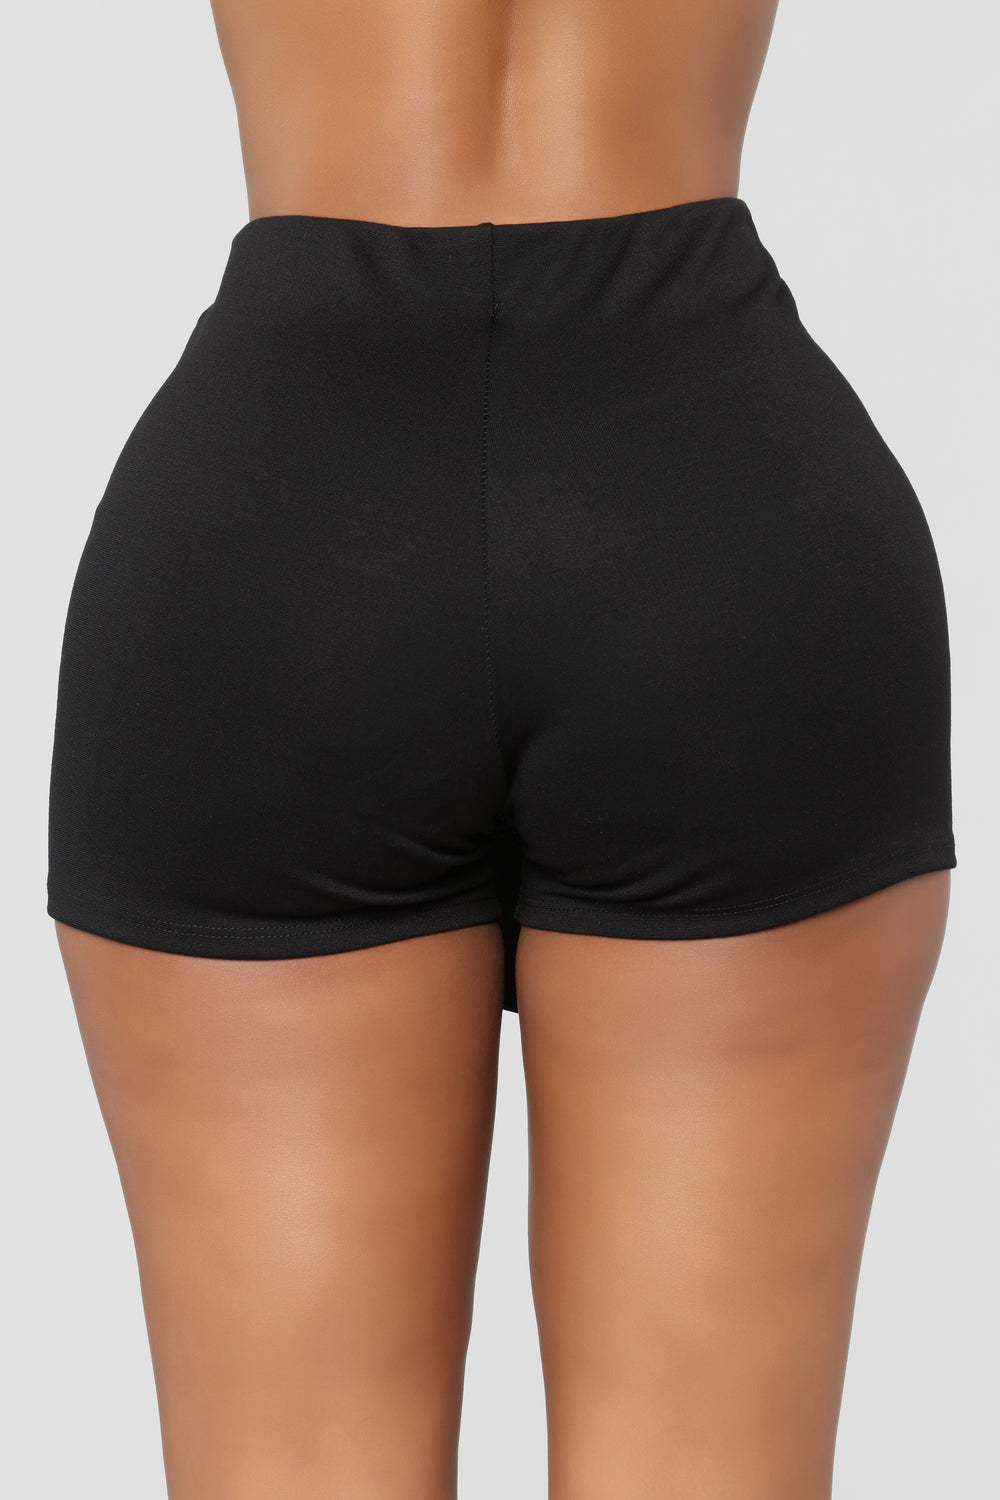 What's In The Envelope Skirt - Black